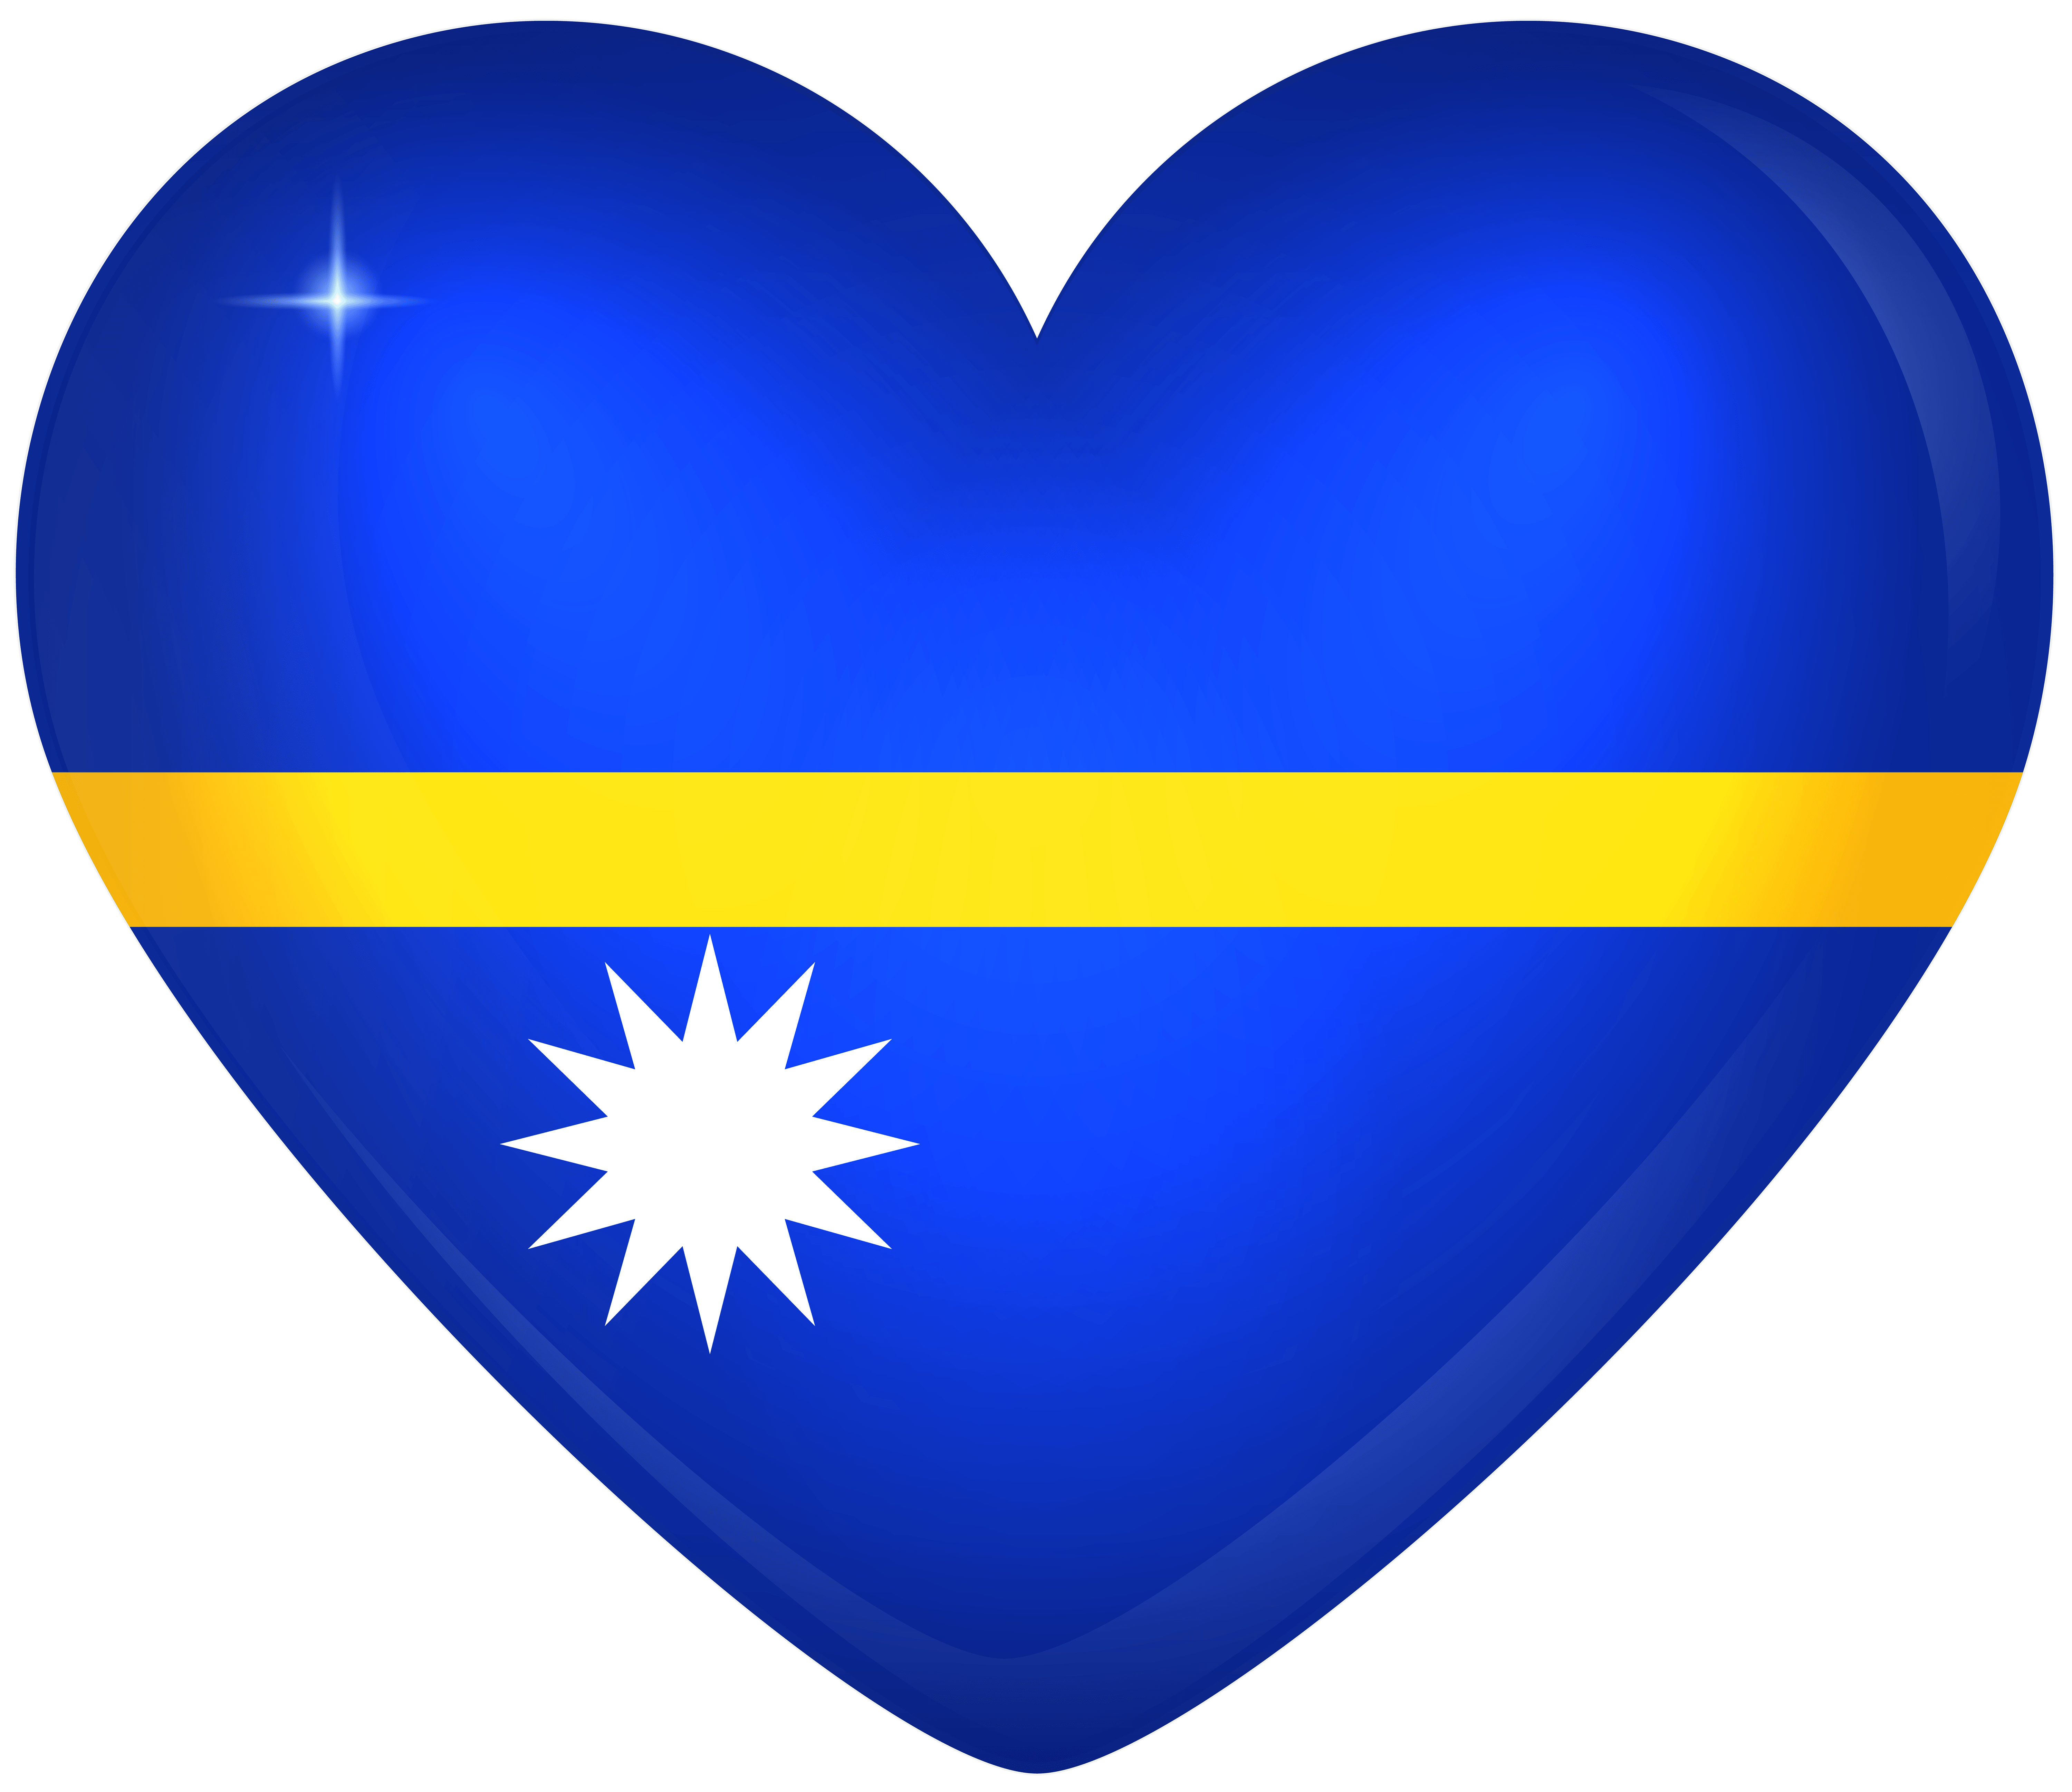 Nauru Large Heart Flag | Gallery Yopriceville - High-Quality Images ...